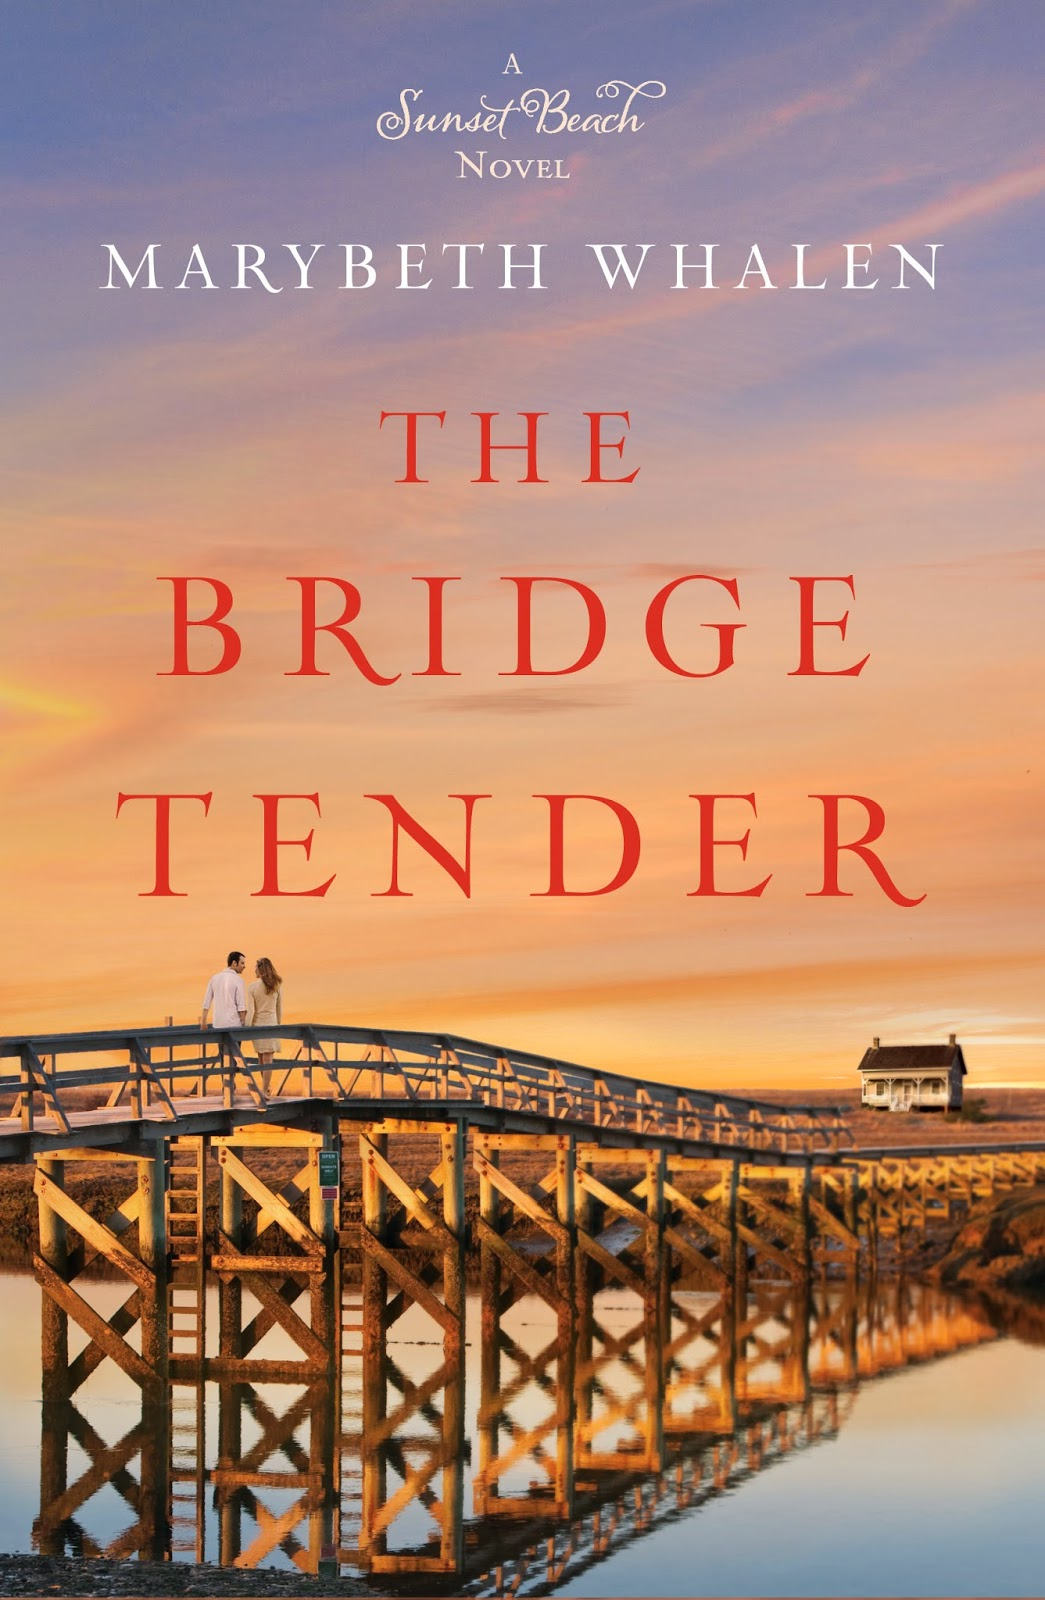 http://www.amazon.com/Bridge-Tender-Sunset-Beach-Novel/dp/0310338409/ref=tmm_pap_title_0?ie=UTF8&qid=1395159649&sr=1-1